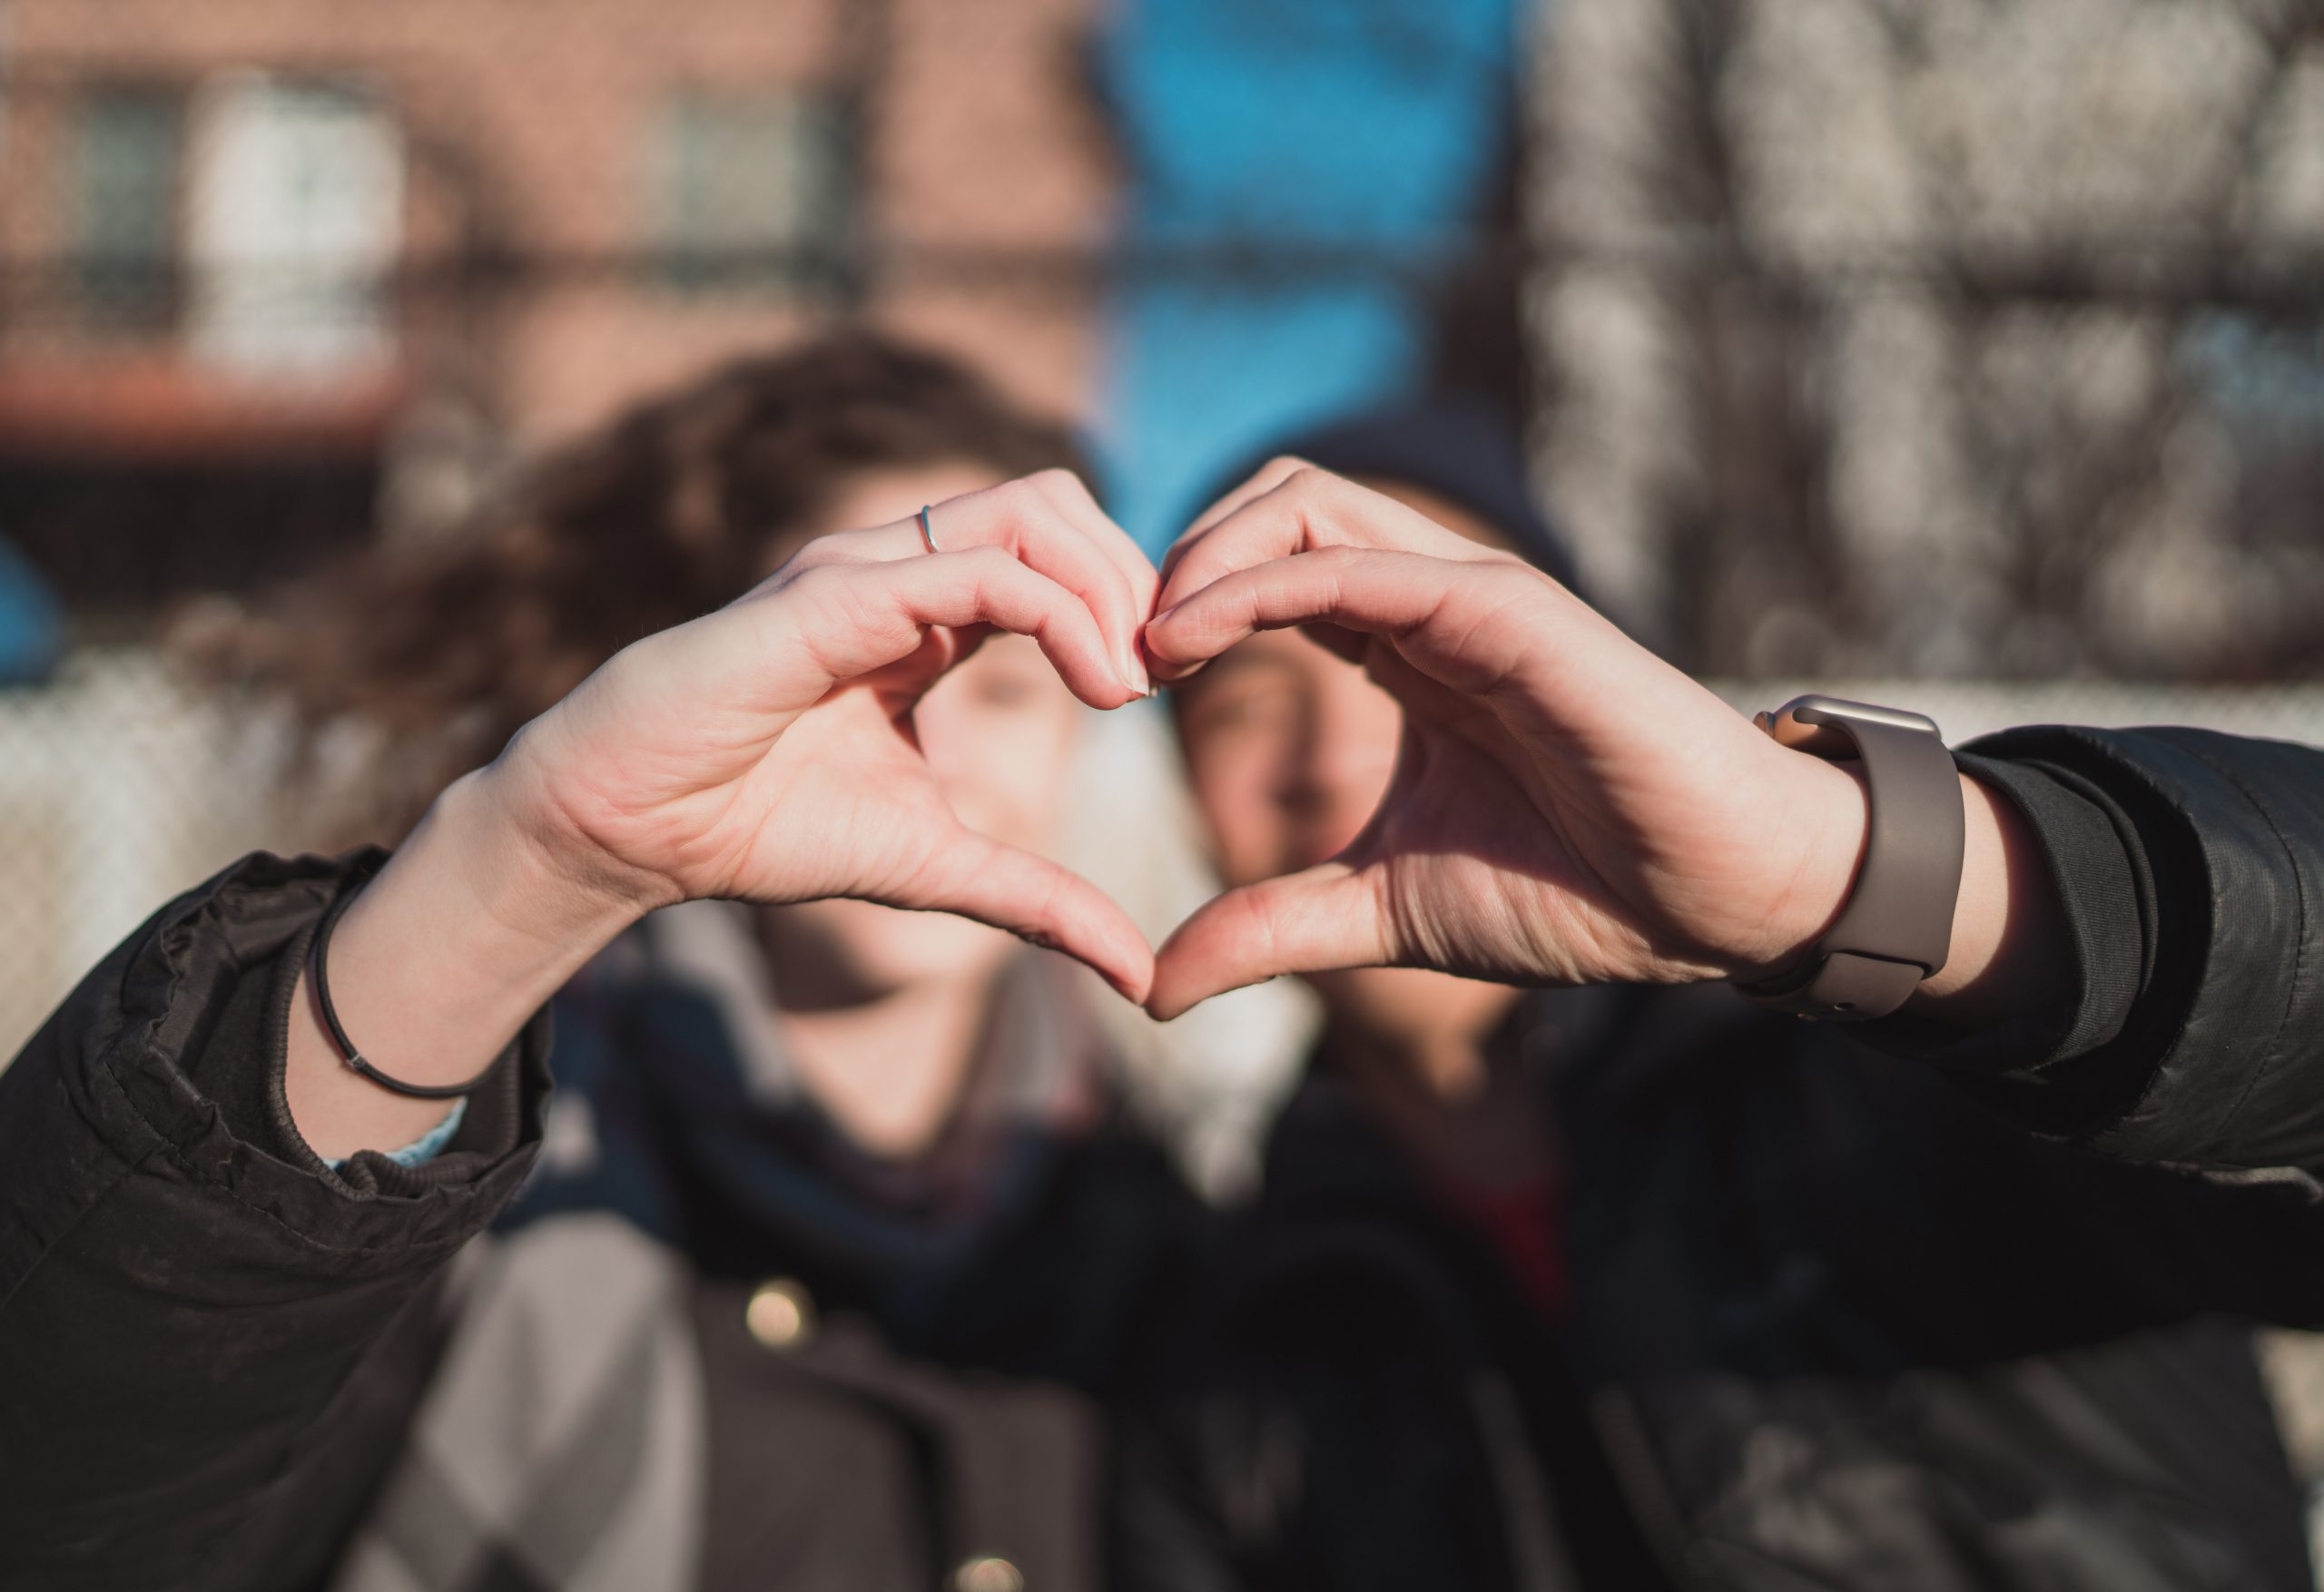 Two people hold their hands up to form a heart